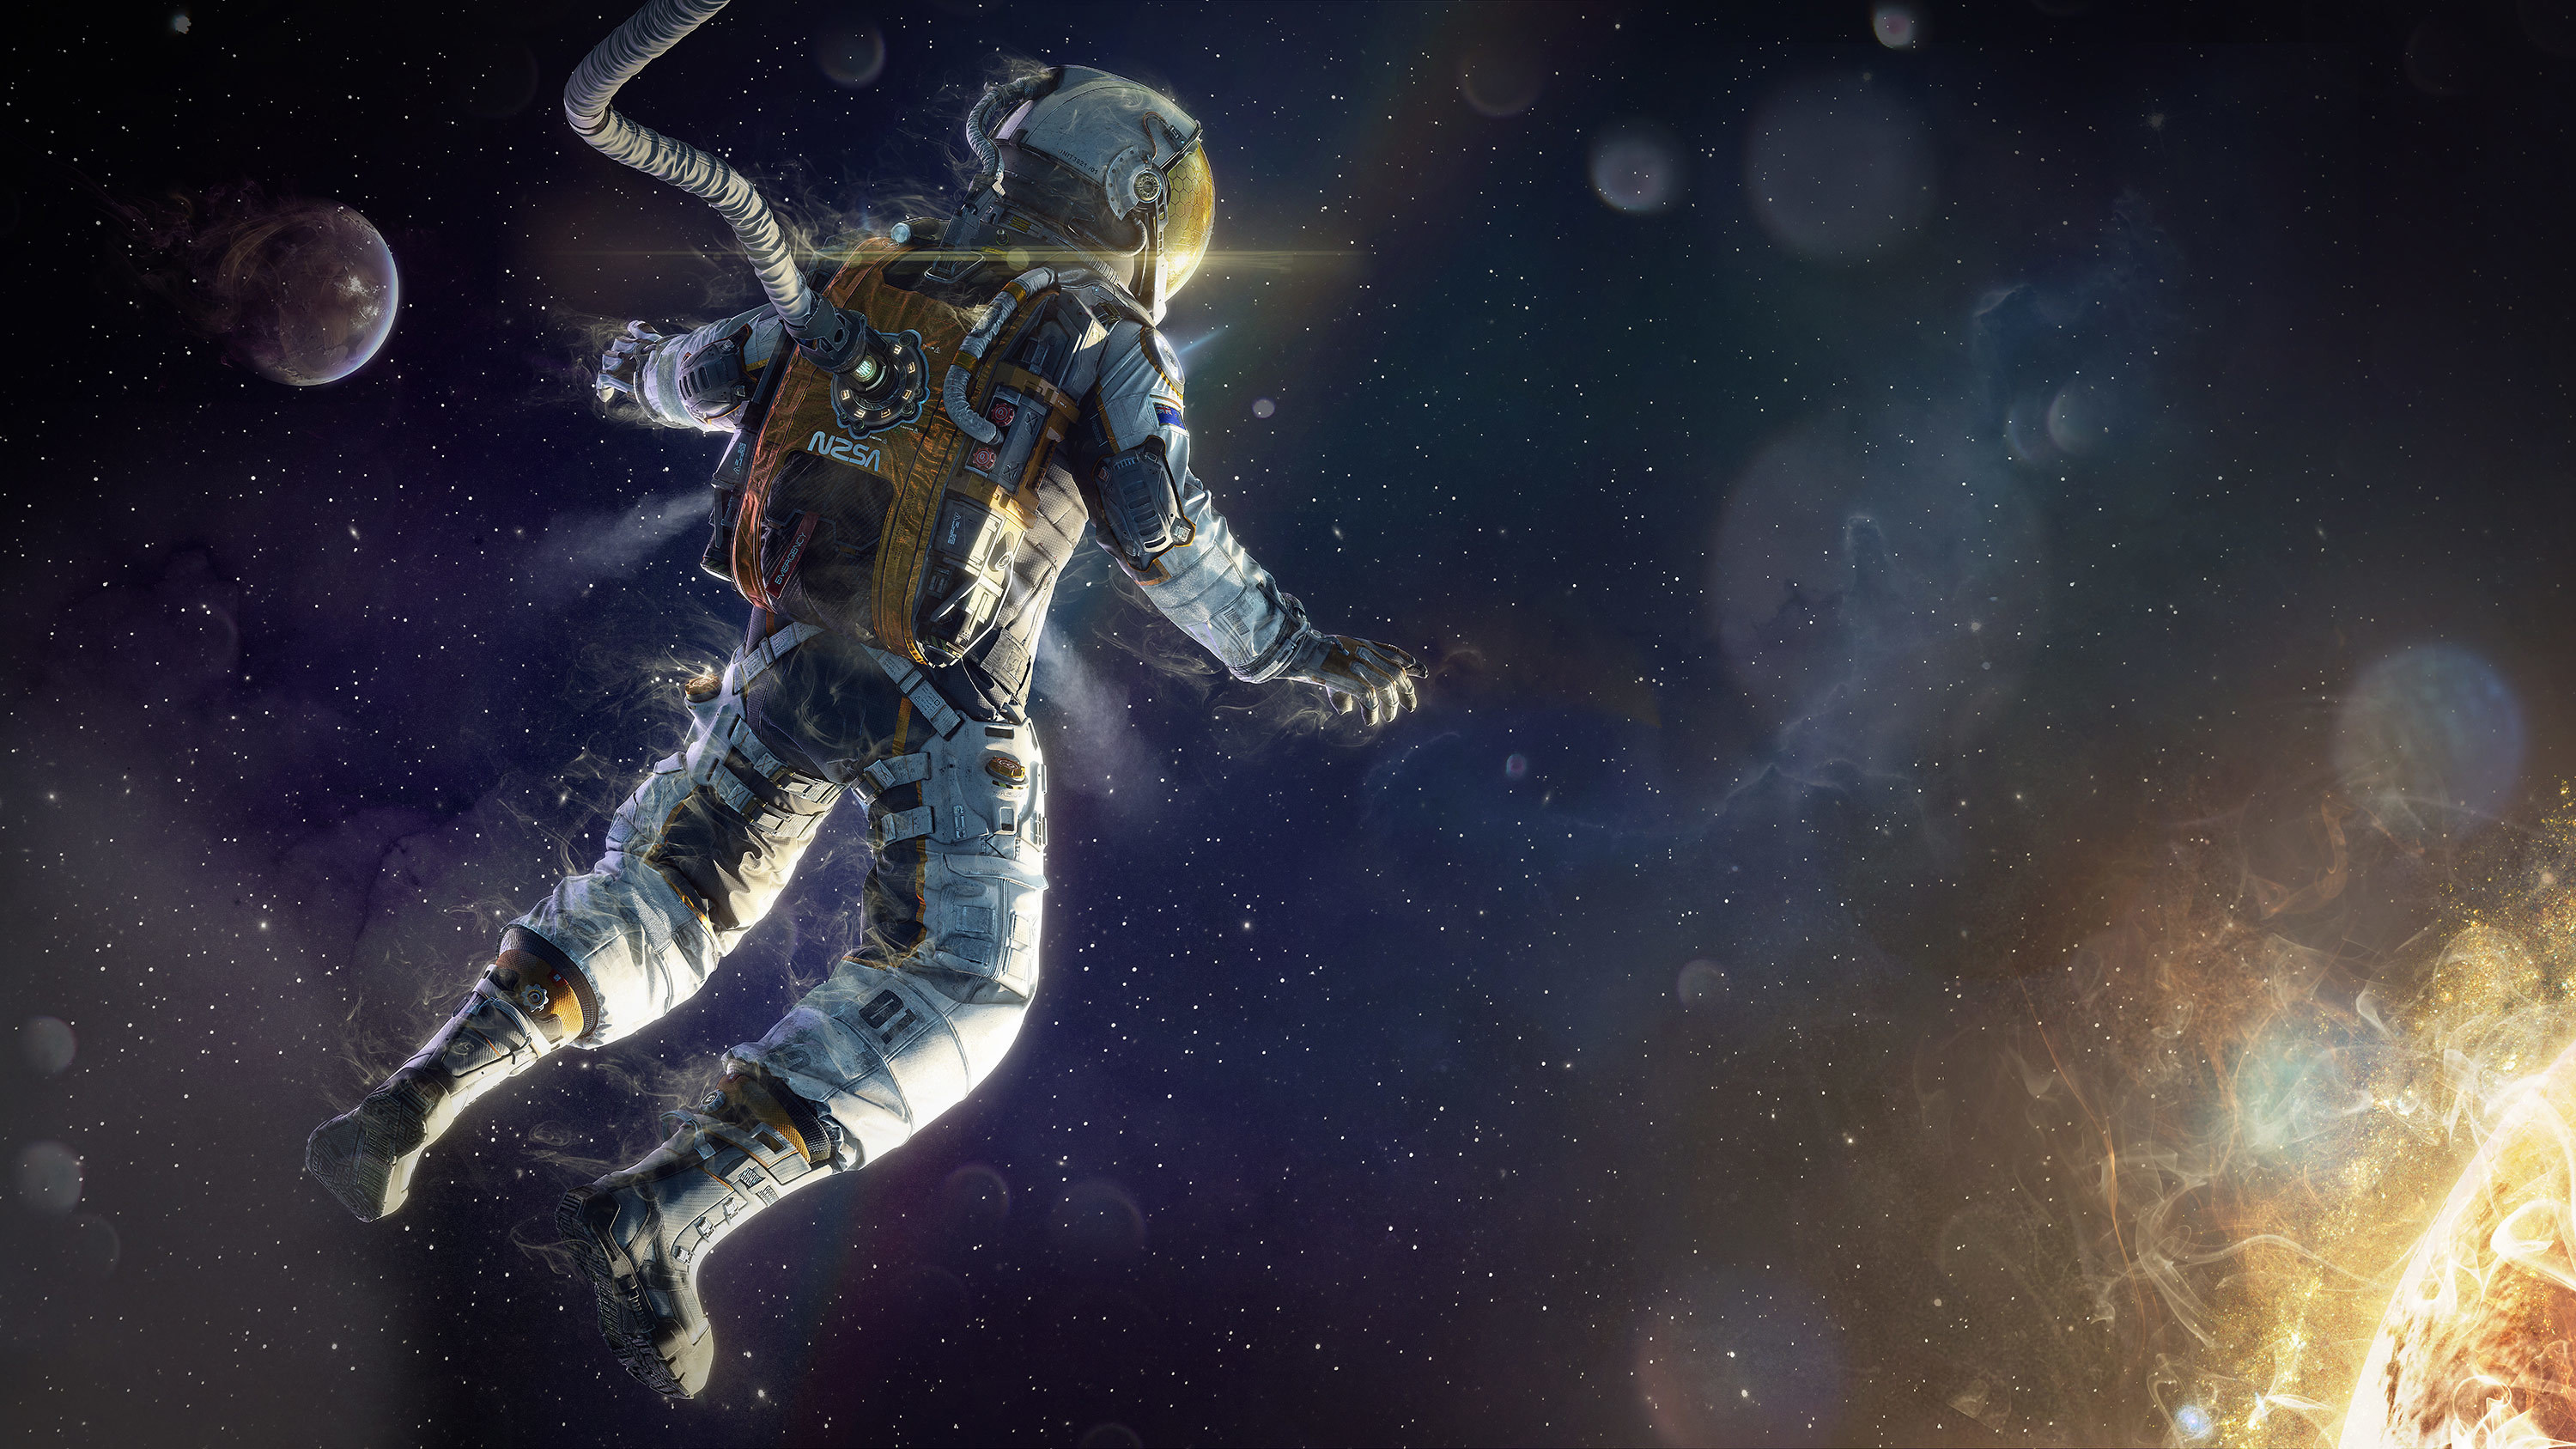 3000x1687 Surreal Astronaut Wallpaper Background ...